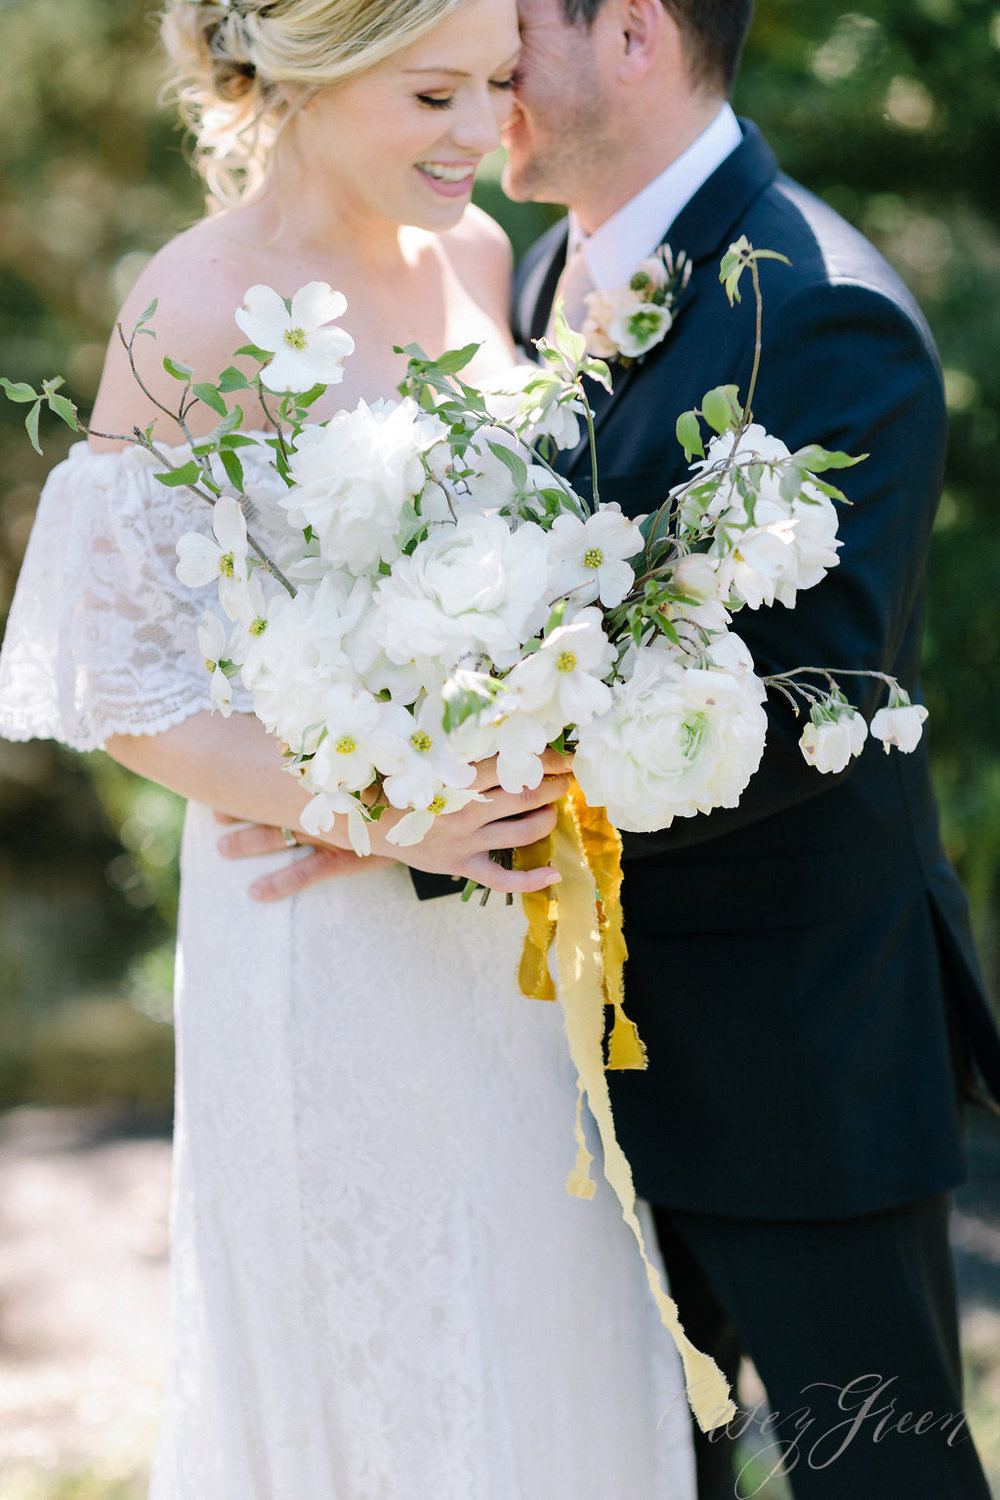 savannah-bridal-shop-ivory-and-beau-bridal-boutique-casey-green-photography-tybee-island-chapel-wedding-planning-mistakes-23.jpg